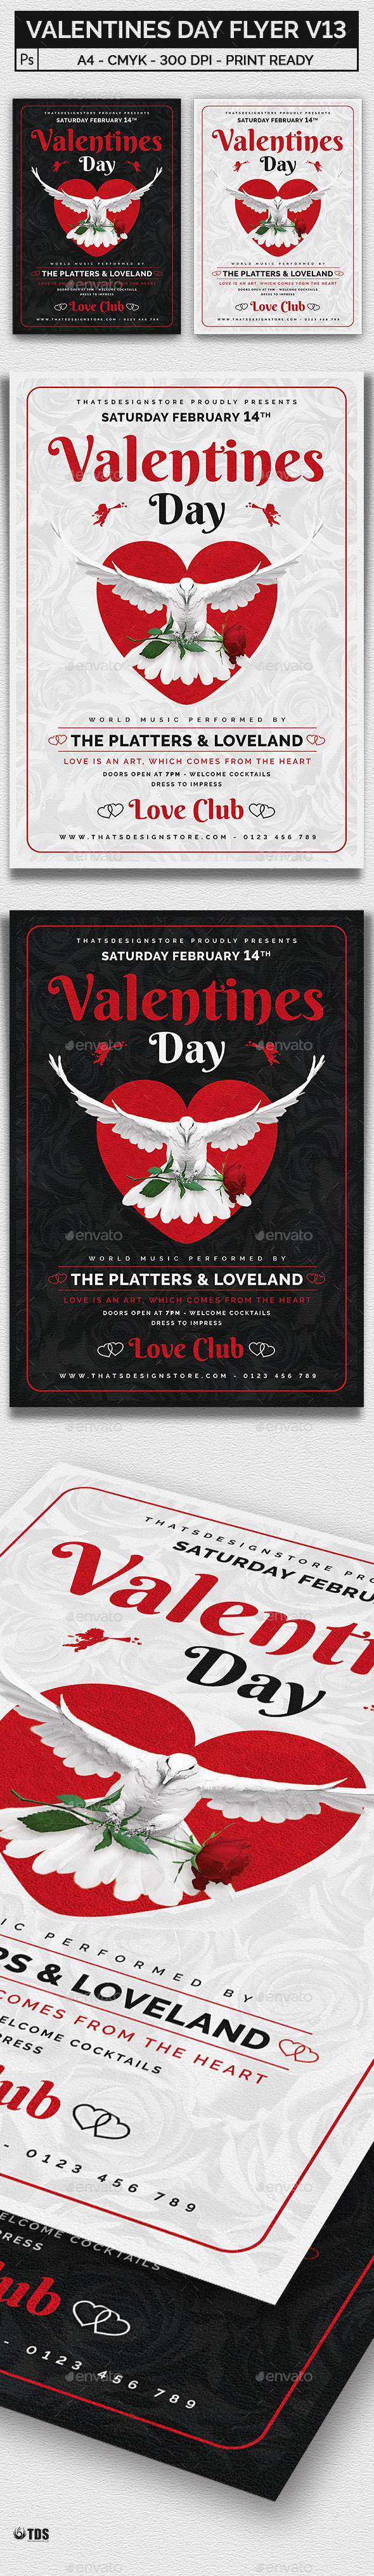 Valentines Day Flyer Template V13 - Clubs & Parties Events